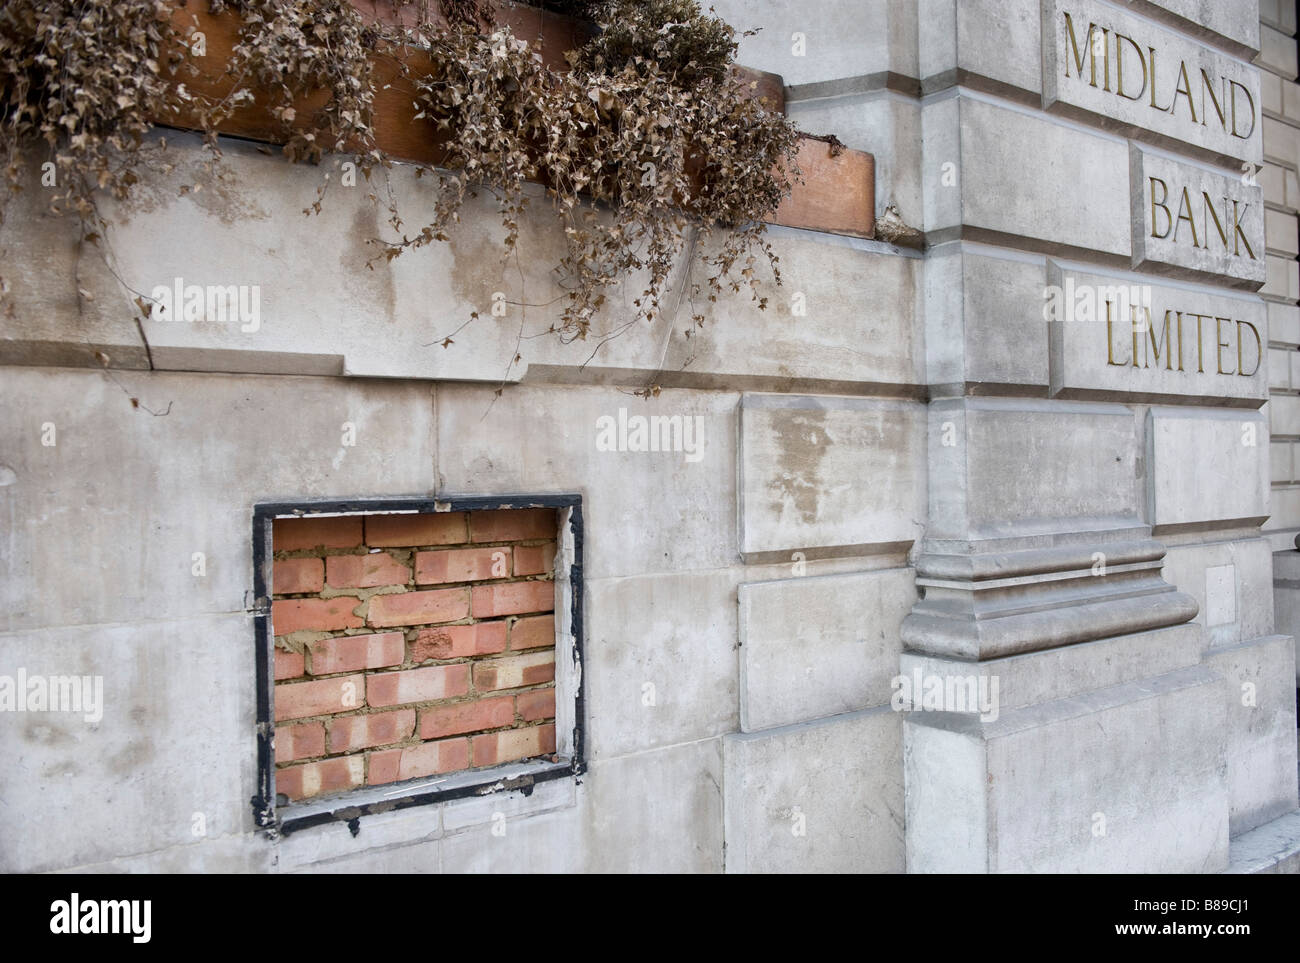 Bricked in cash dispenser at former branch of Midland Bank, London UK - Stock Image